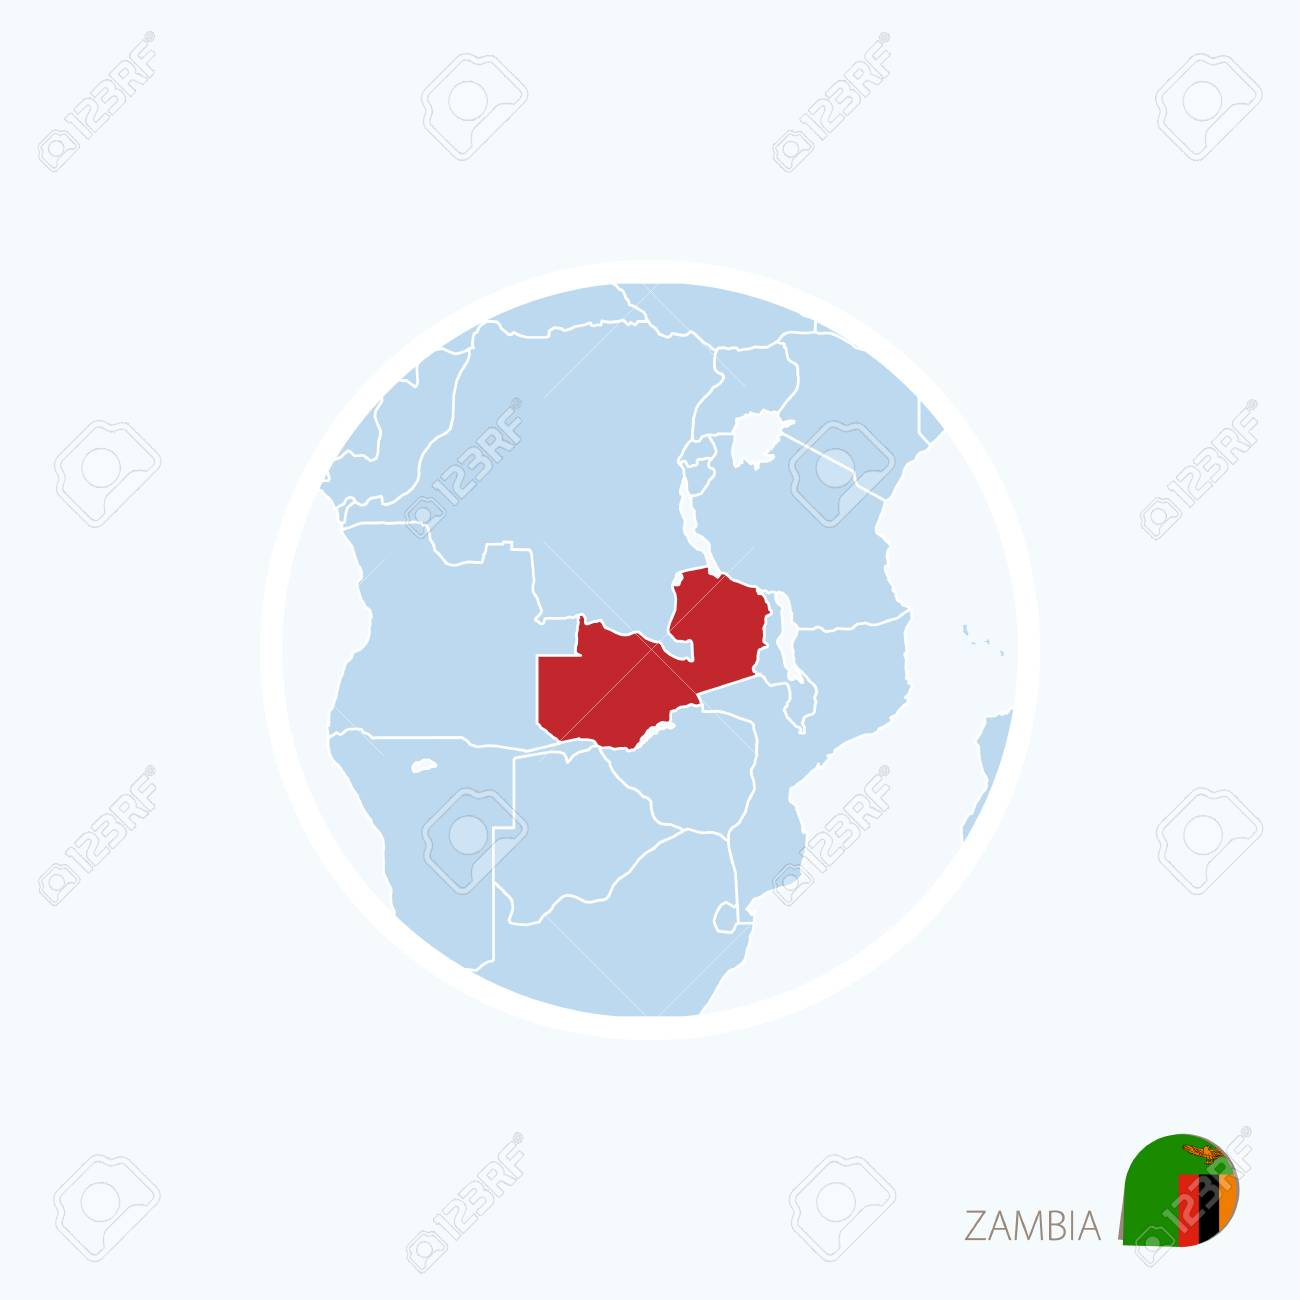 Map Icon Of Zambia Blue Map Of Africa With Highlighted Zambia